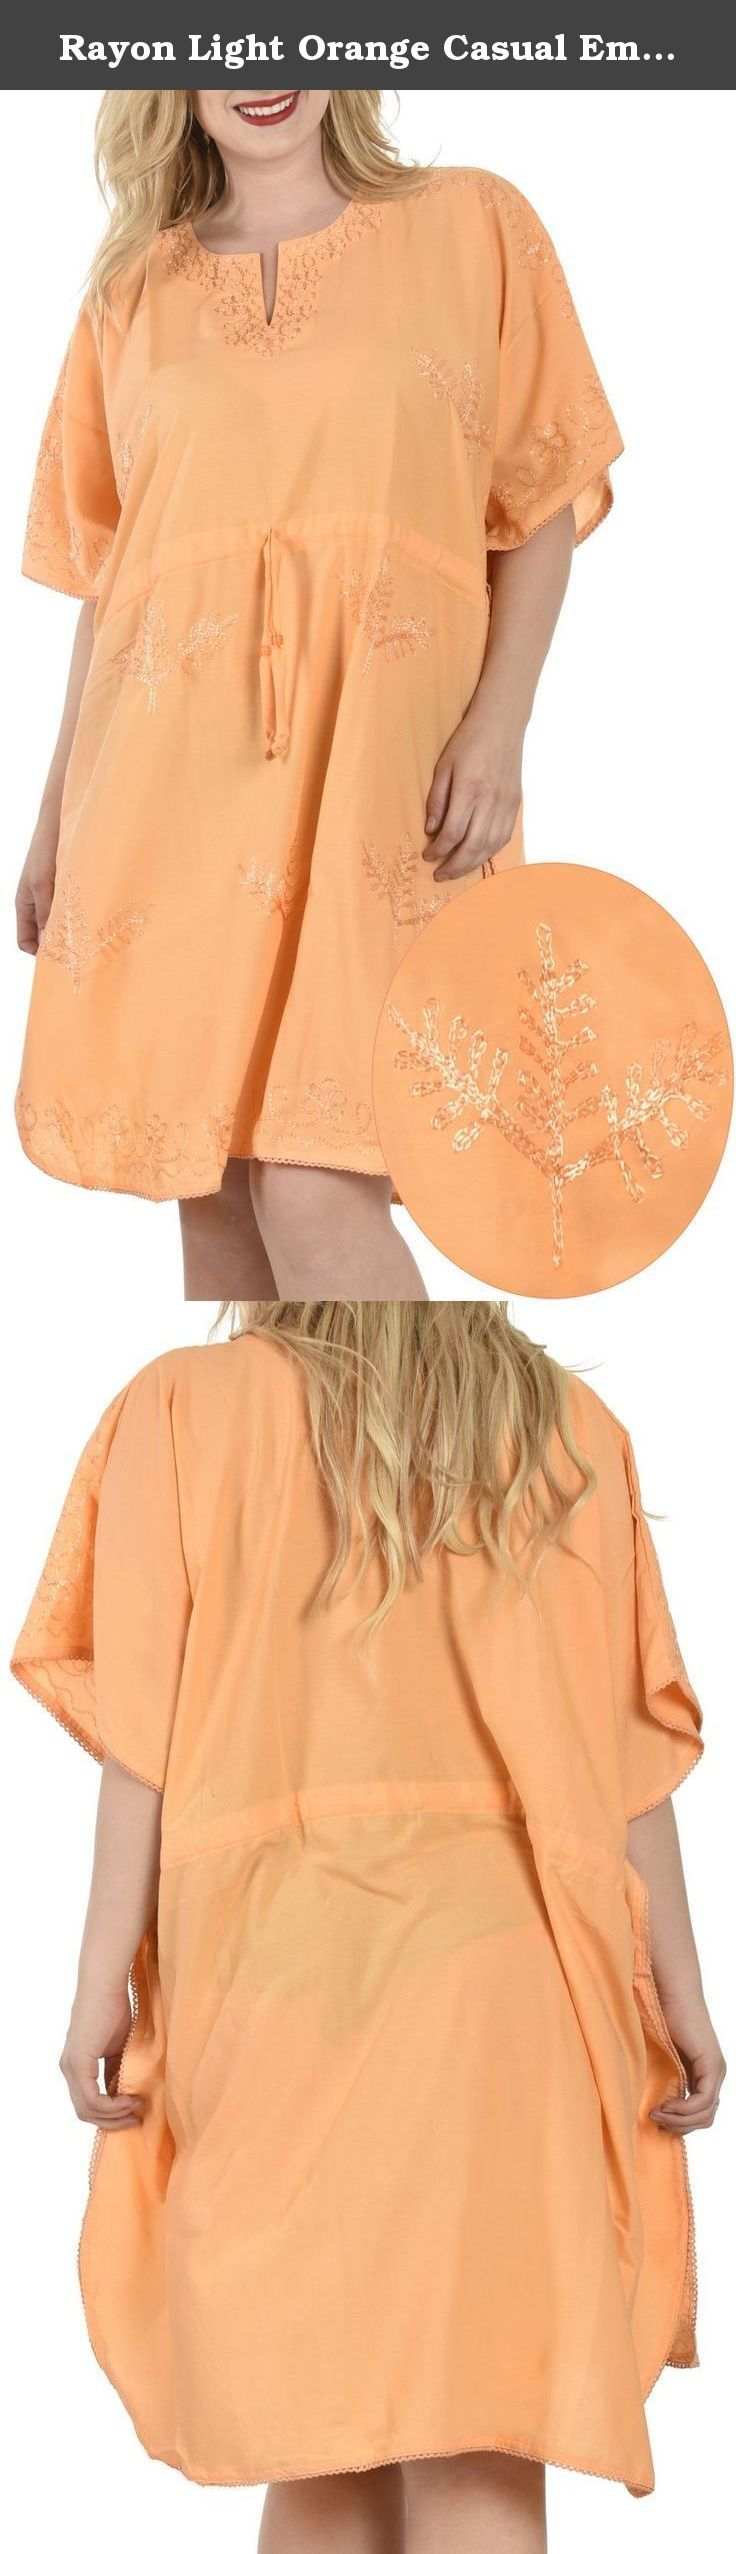 "Rayon Light Orange Casual Embroidered Plus Size Short Lounge Wear Caftan Tunic Valentines Day Gifts 2017. Description:- ==> Welcome to LA LEELA ==> Enjoy Beach, Breeze and Nature with La Leela's ""VIBRANT BEACH COLLECTION"" and stay calm and classy! . ==> Fabric : DELICATE DESIGNER EMBROIDERED LIGHTWEIGHT SMOOTH RAYON FABRIC US Size : From Regular 14 (L) TO Plus Size 28W (4X) ➤ UK SIZE : FROM REGULAR 14 (M) TO 30(XXXL) ➤ BUST : 56 Inches [ 142 cms ]➤ Length : 42 Inches [ 106 cms ]…"